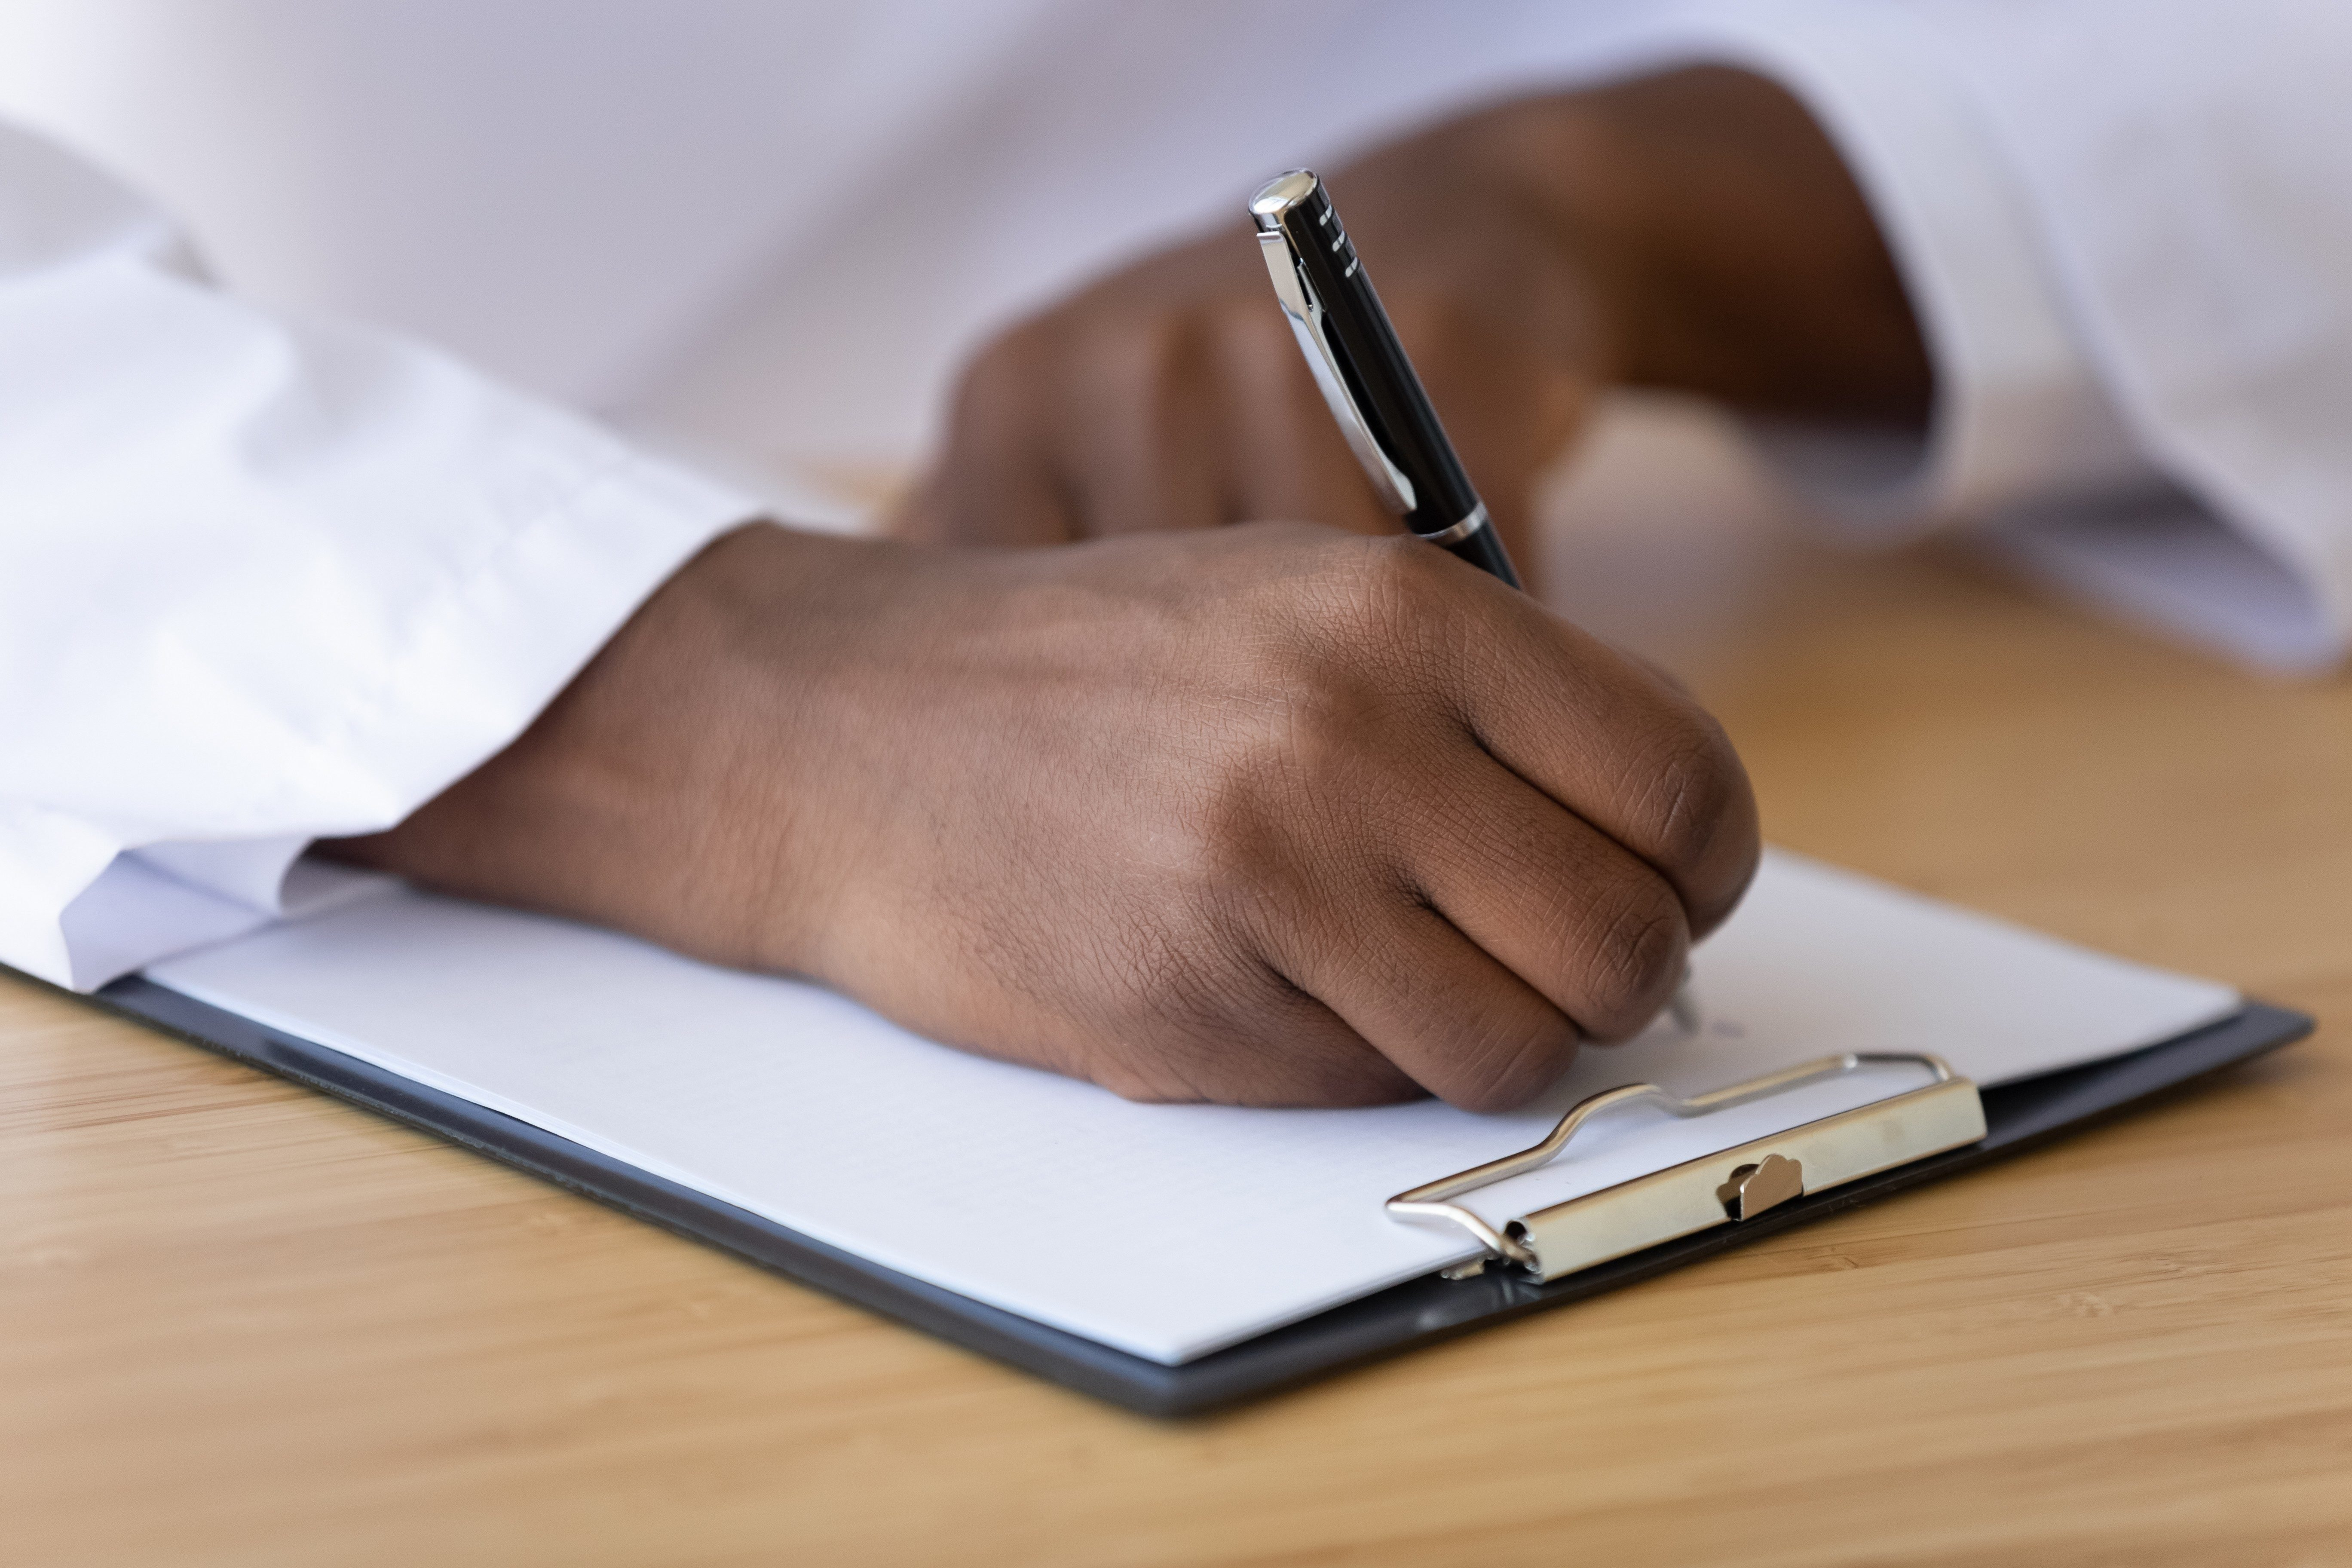 African American doctor writing on paper close up, filling patient form, document, medical history or anamnesis, sitting at desk, disease prevention, healthcare, health insurance contract